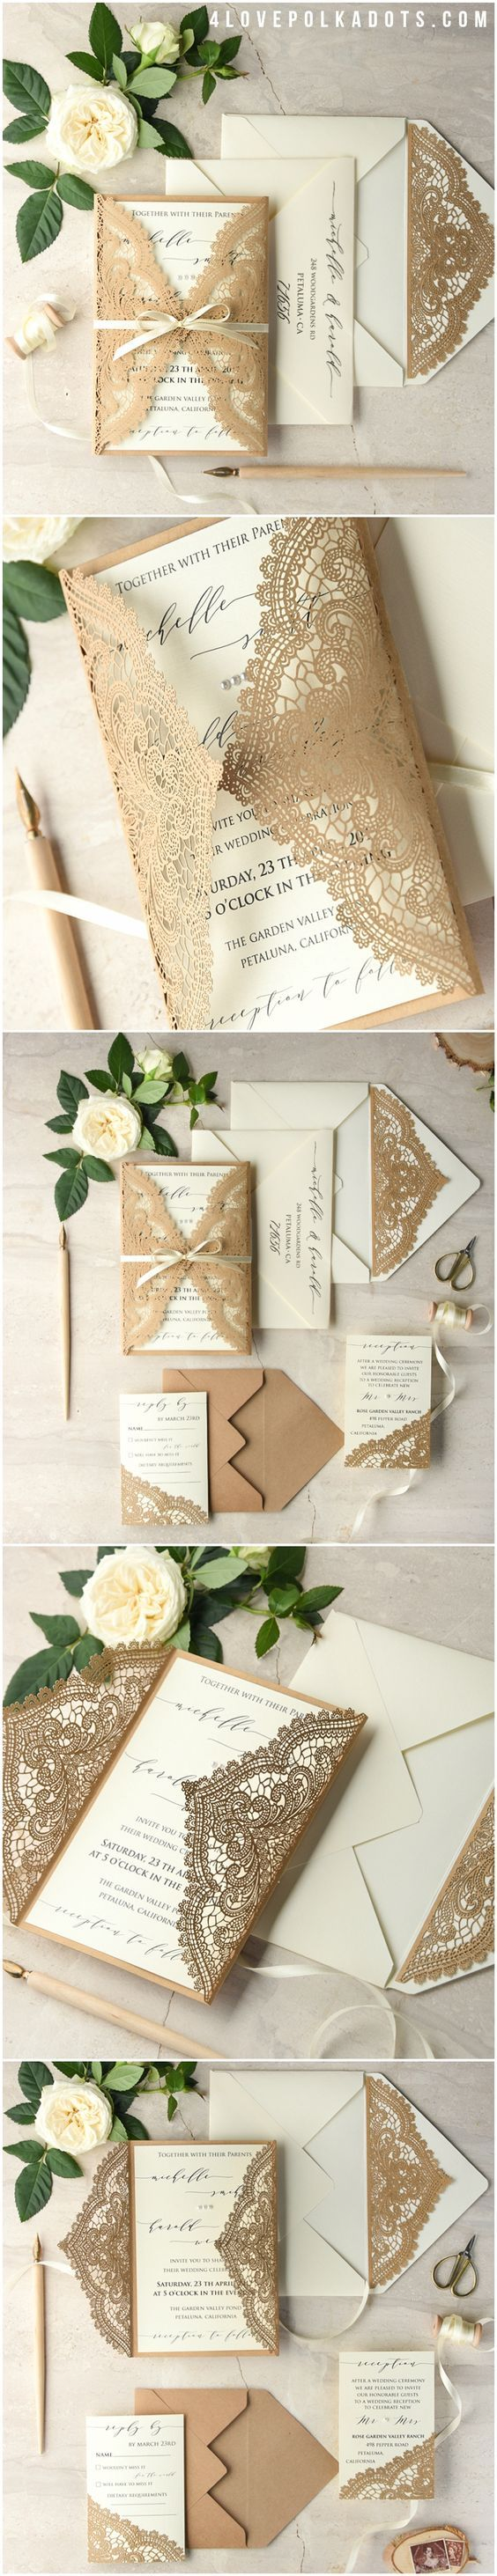 Absolutely love this simplistic beige lace wedding